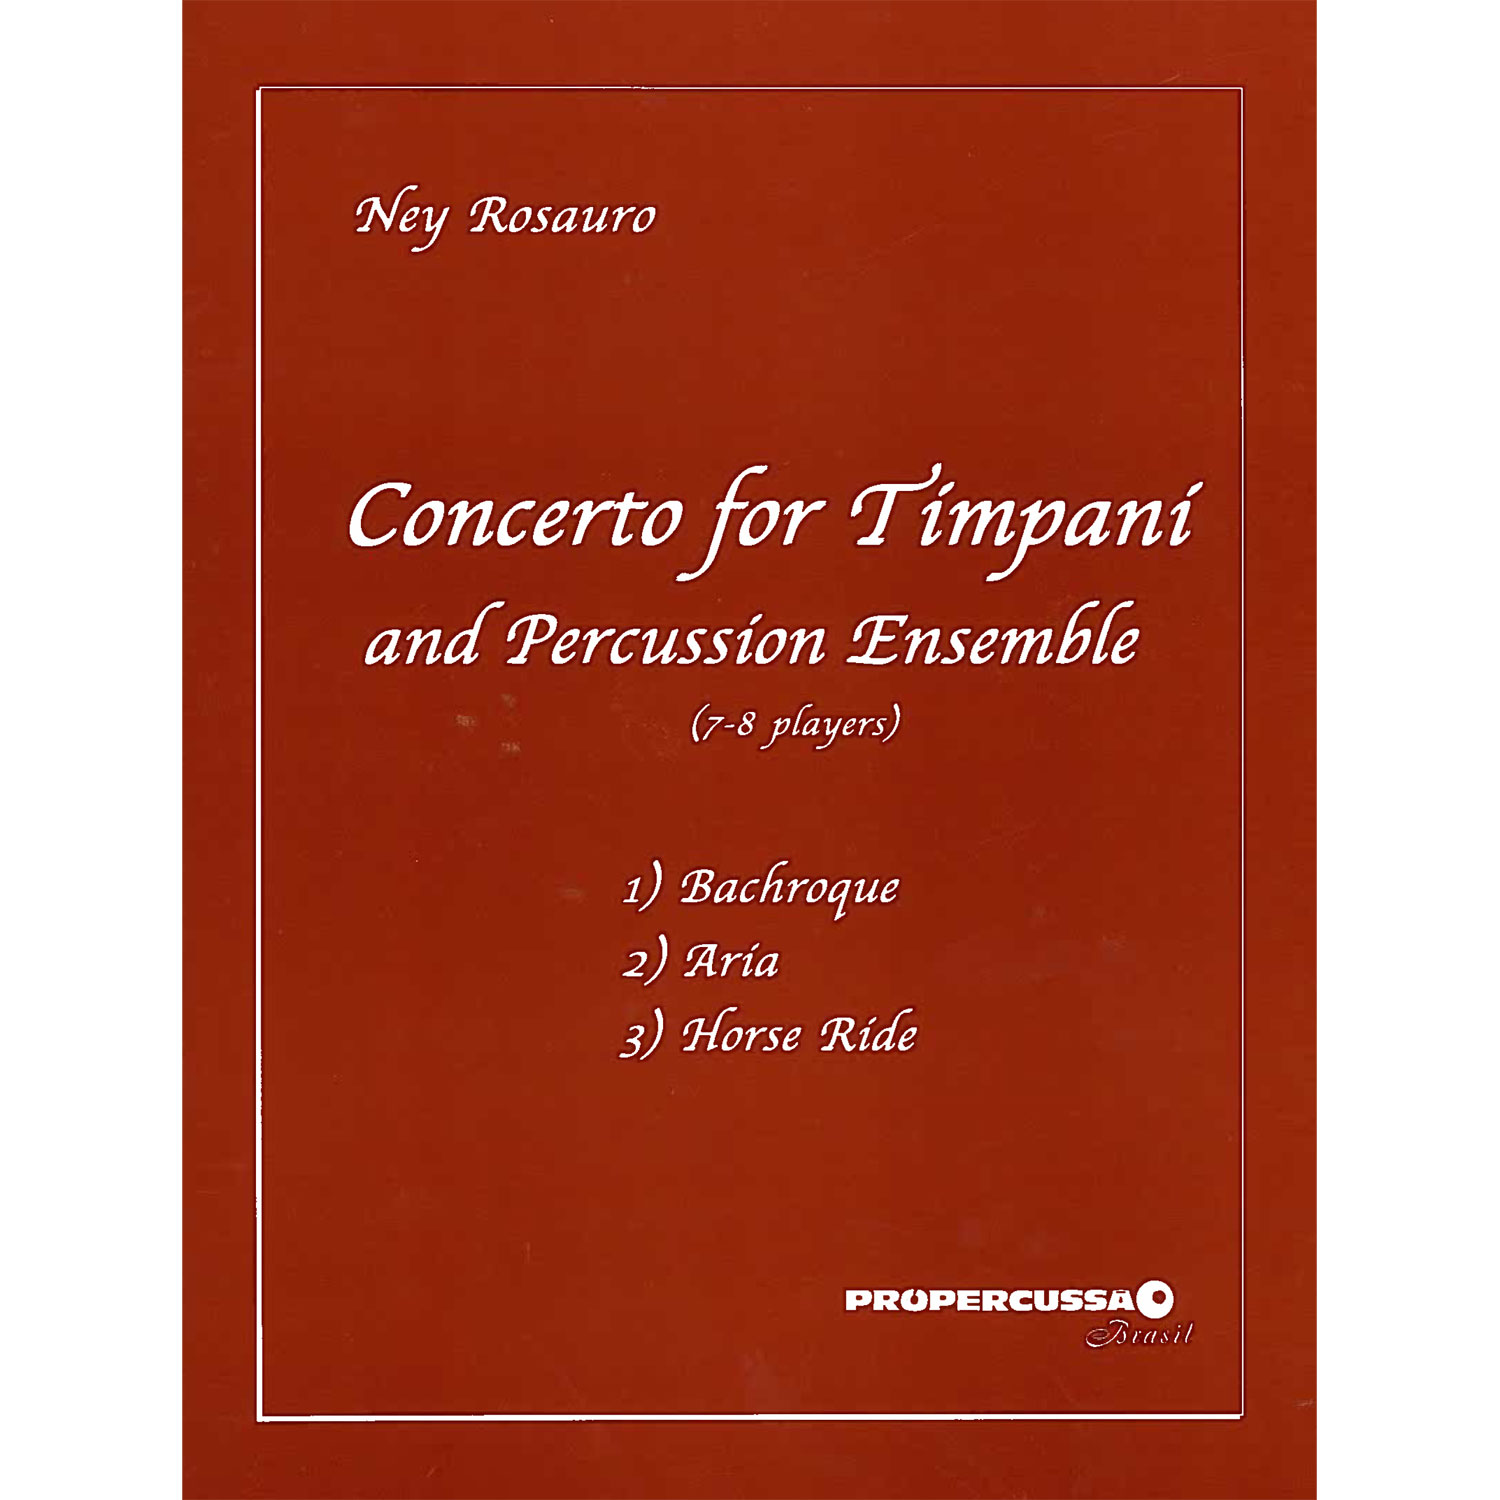 Concerto for Timpani and Percussion Ensemble by Ney Rosauro